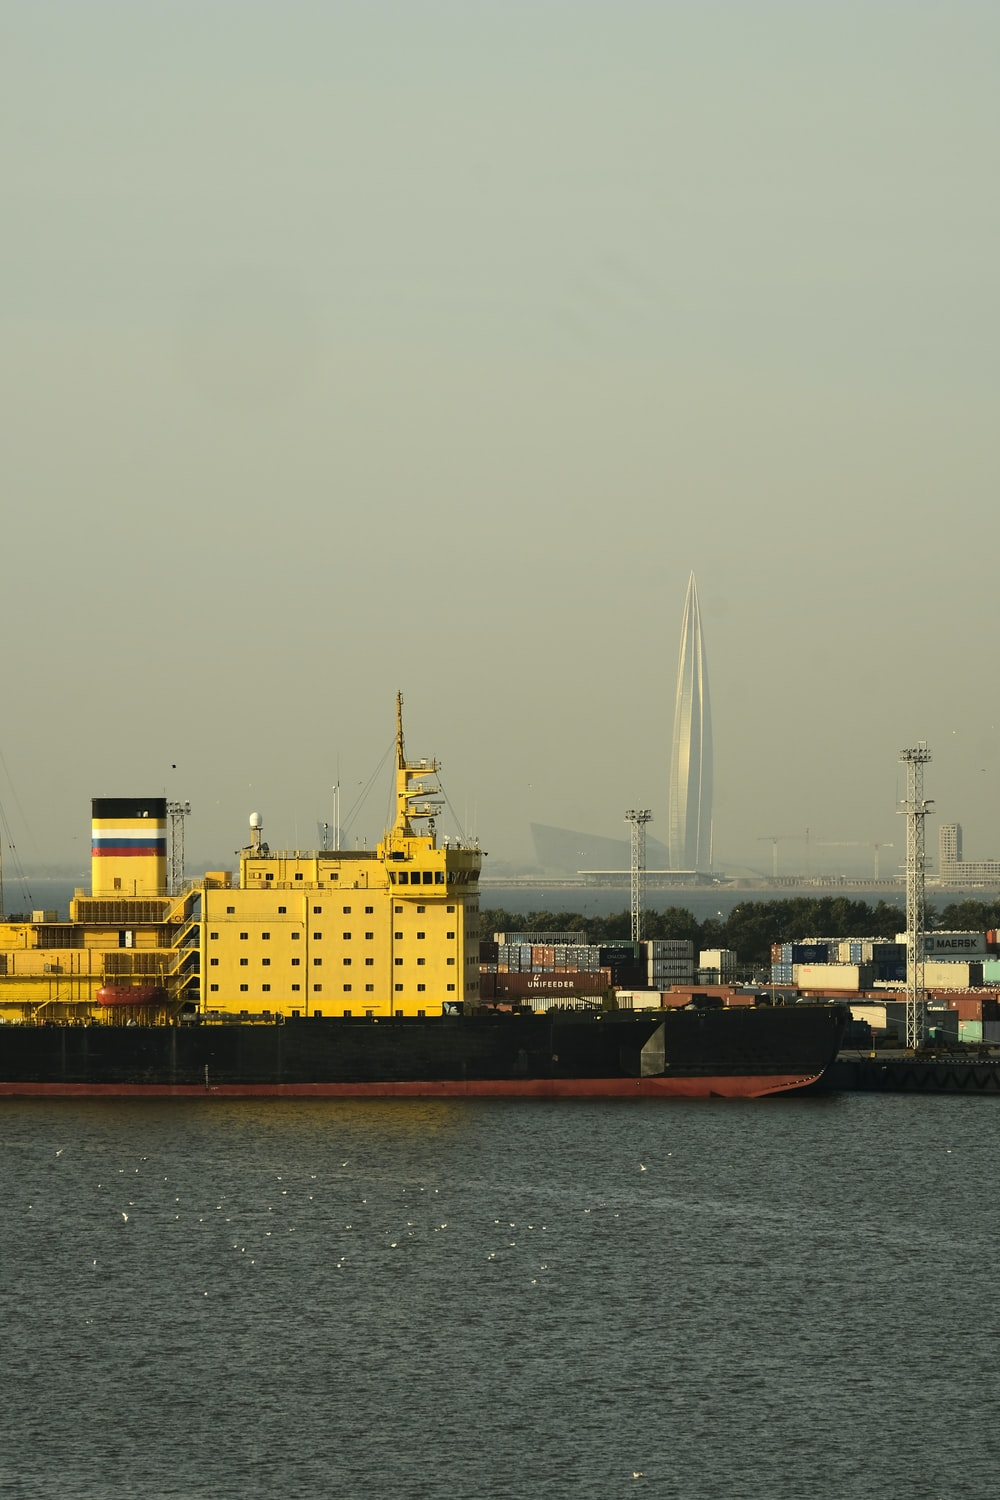 red and yellow cargo ship on sea during daytime